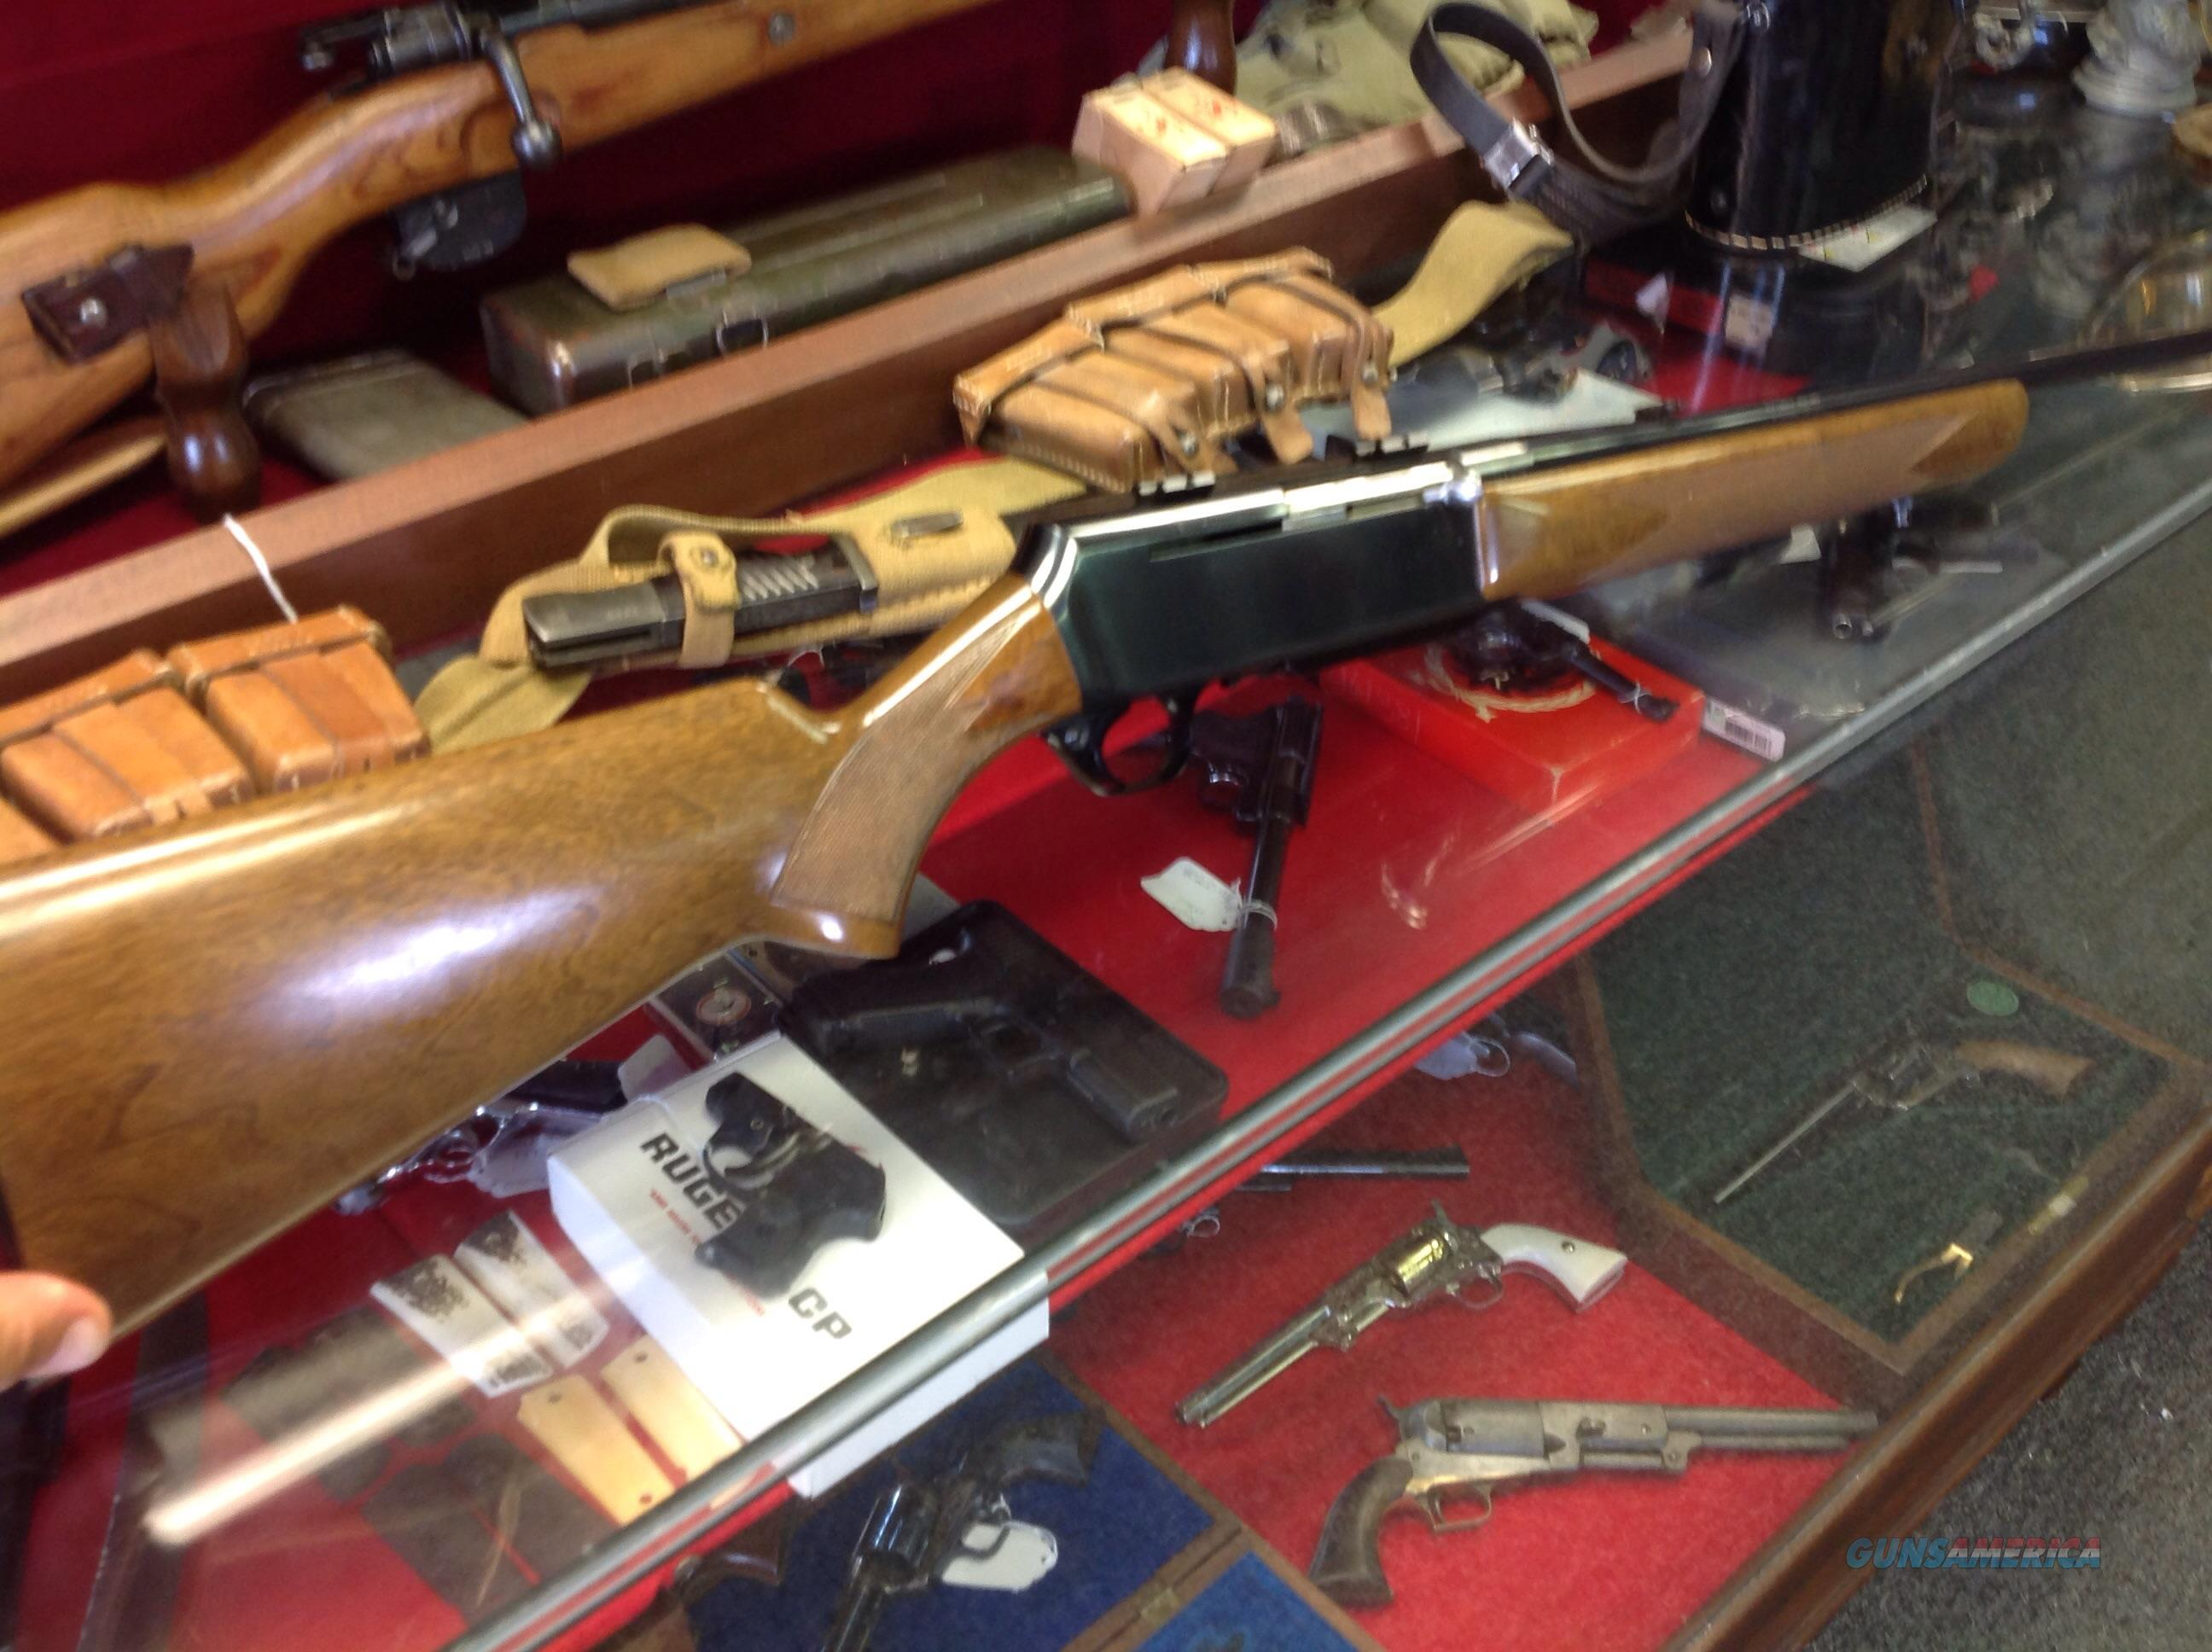 AS NEW NEVER USED BELGIUM BROWNING BAR 30-06 GORGEOUS BLUE   Guns > Rifles > Browning Rifles > Semi Auto > Hunting